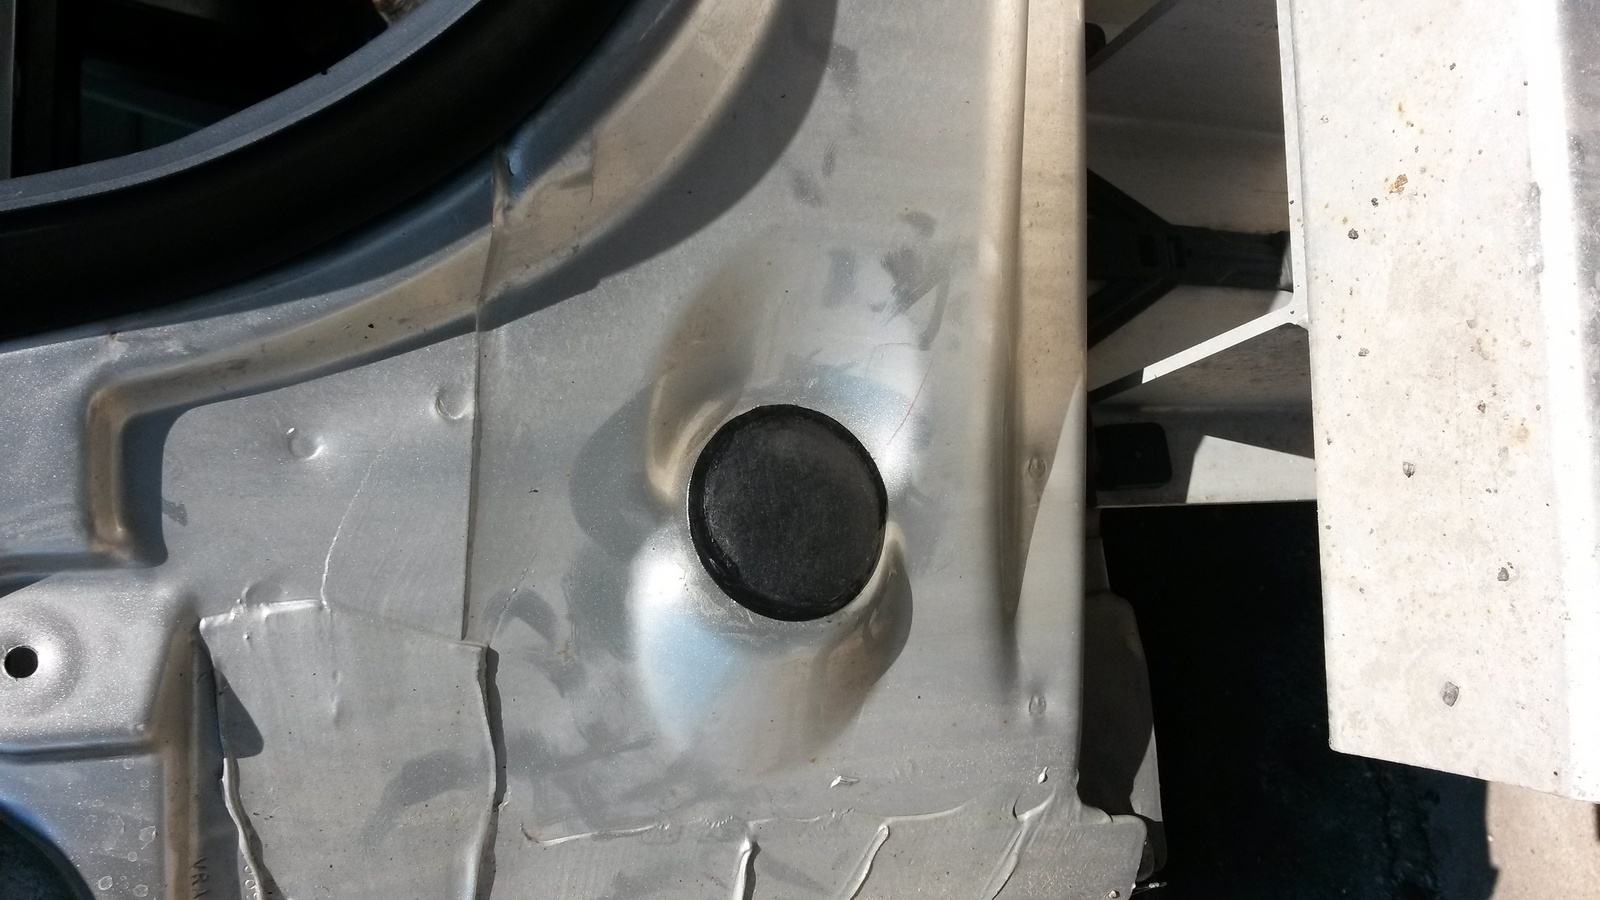 Buick Lucerne Questions - Why Is My 08 U0026 39  Lucerne Filled With Water